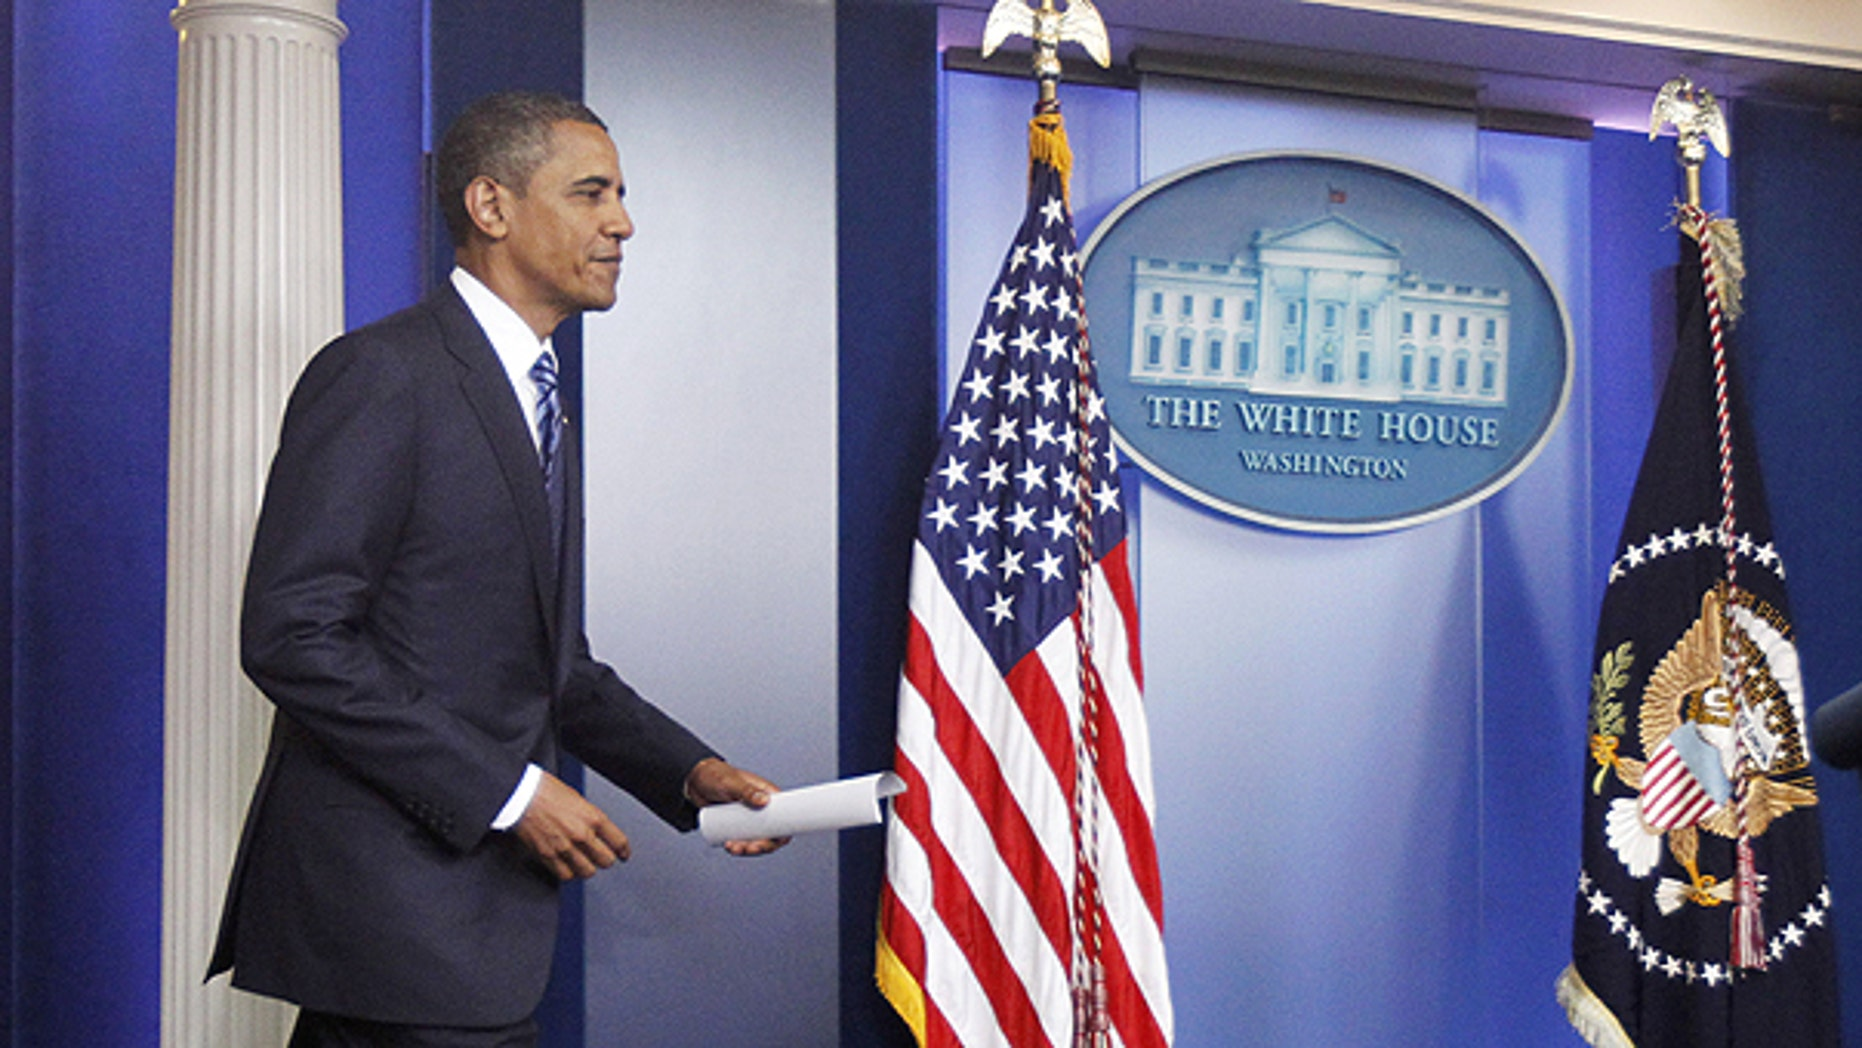 July 5: Obama arrives in the James Brady Press Briefing Room of the White House in Washington to make a statement to reporters about debt ceiling negotiations.